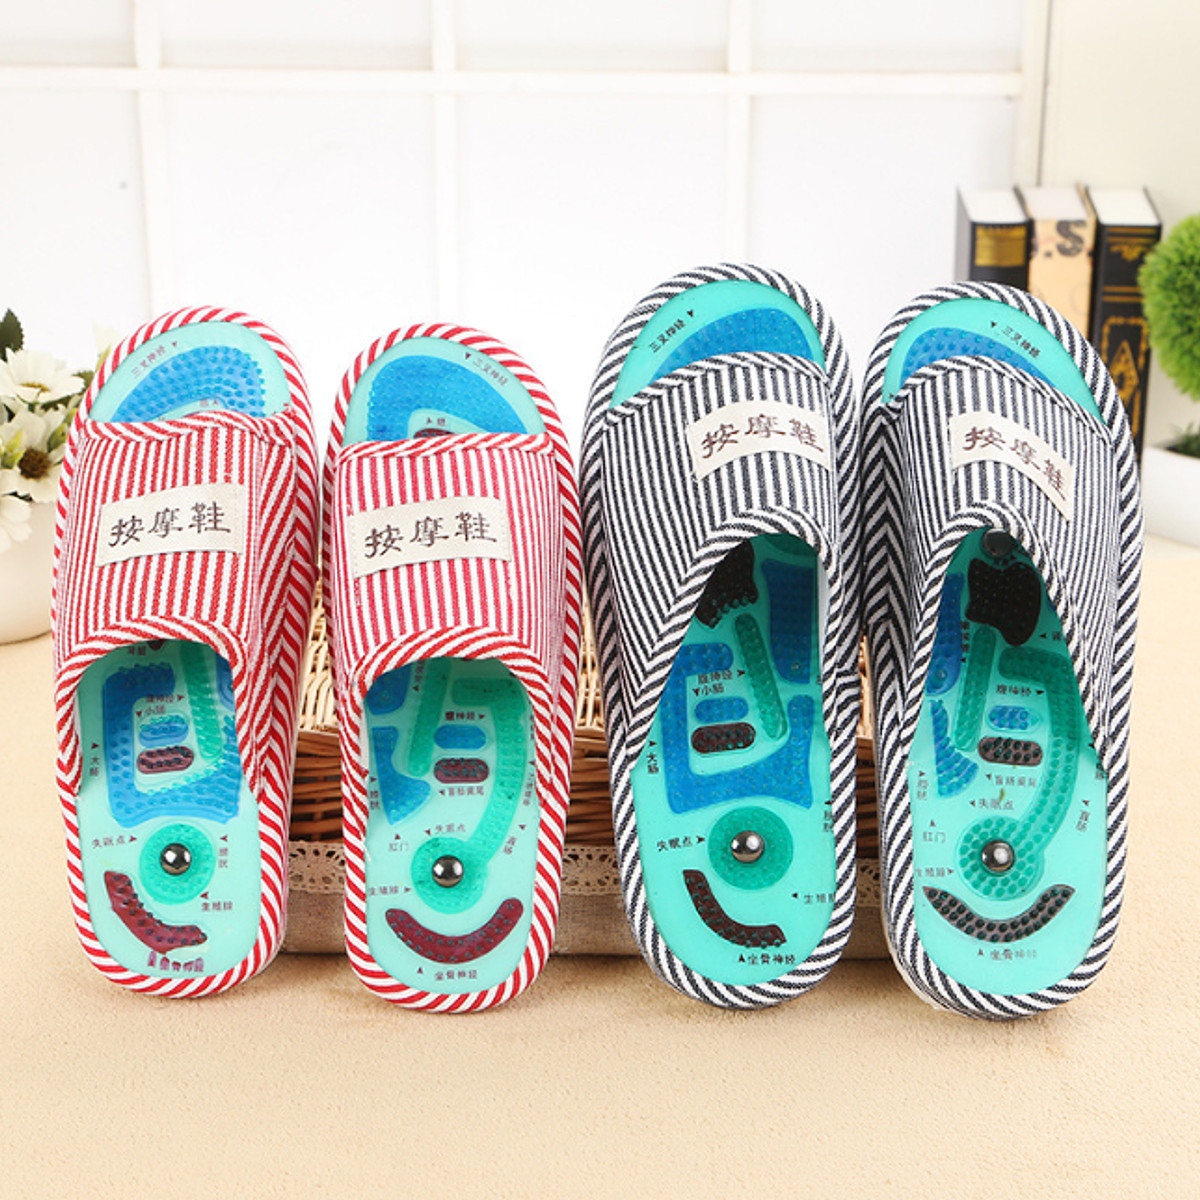 83d32009e Slippers Massage Foot Spa Health Acupuncture Feet Care Sandal ...